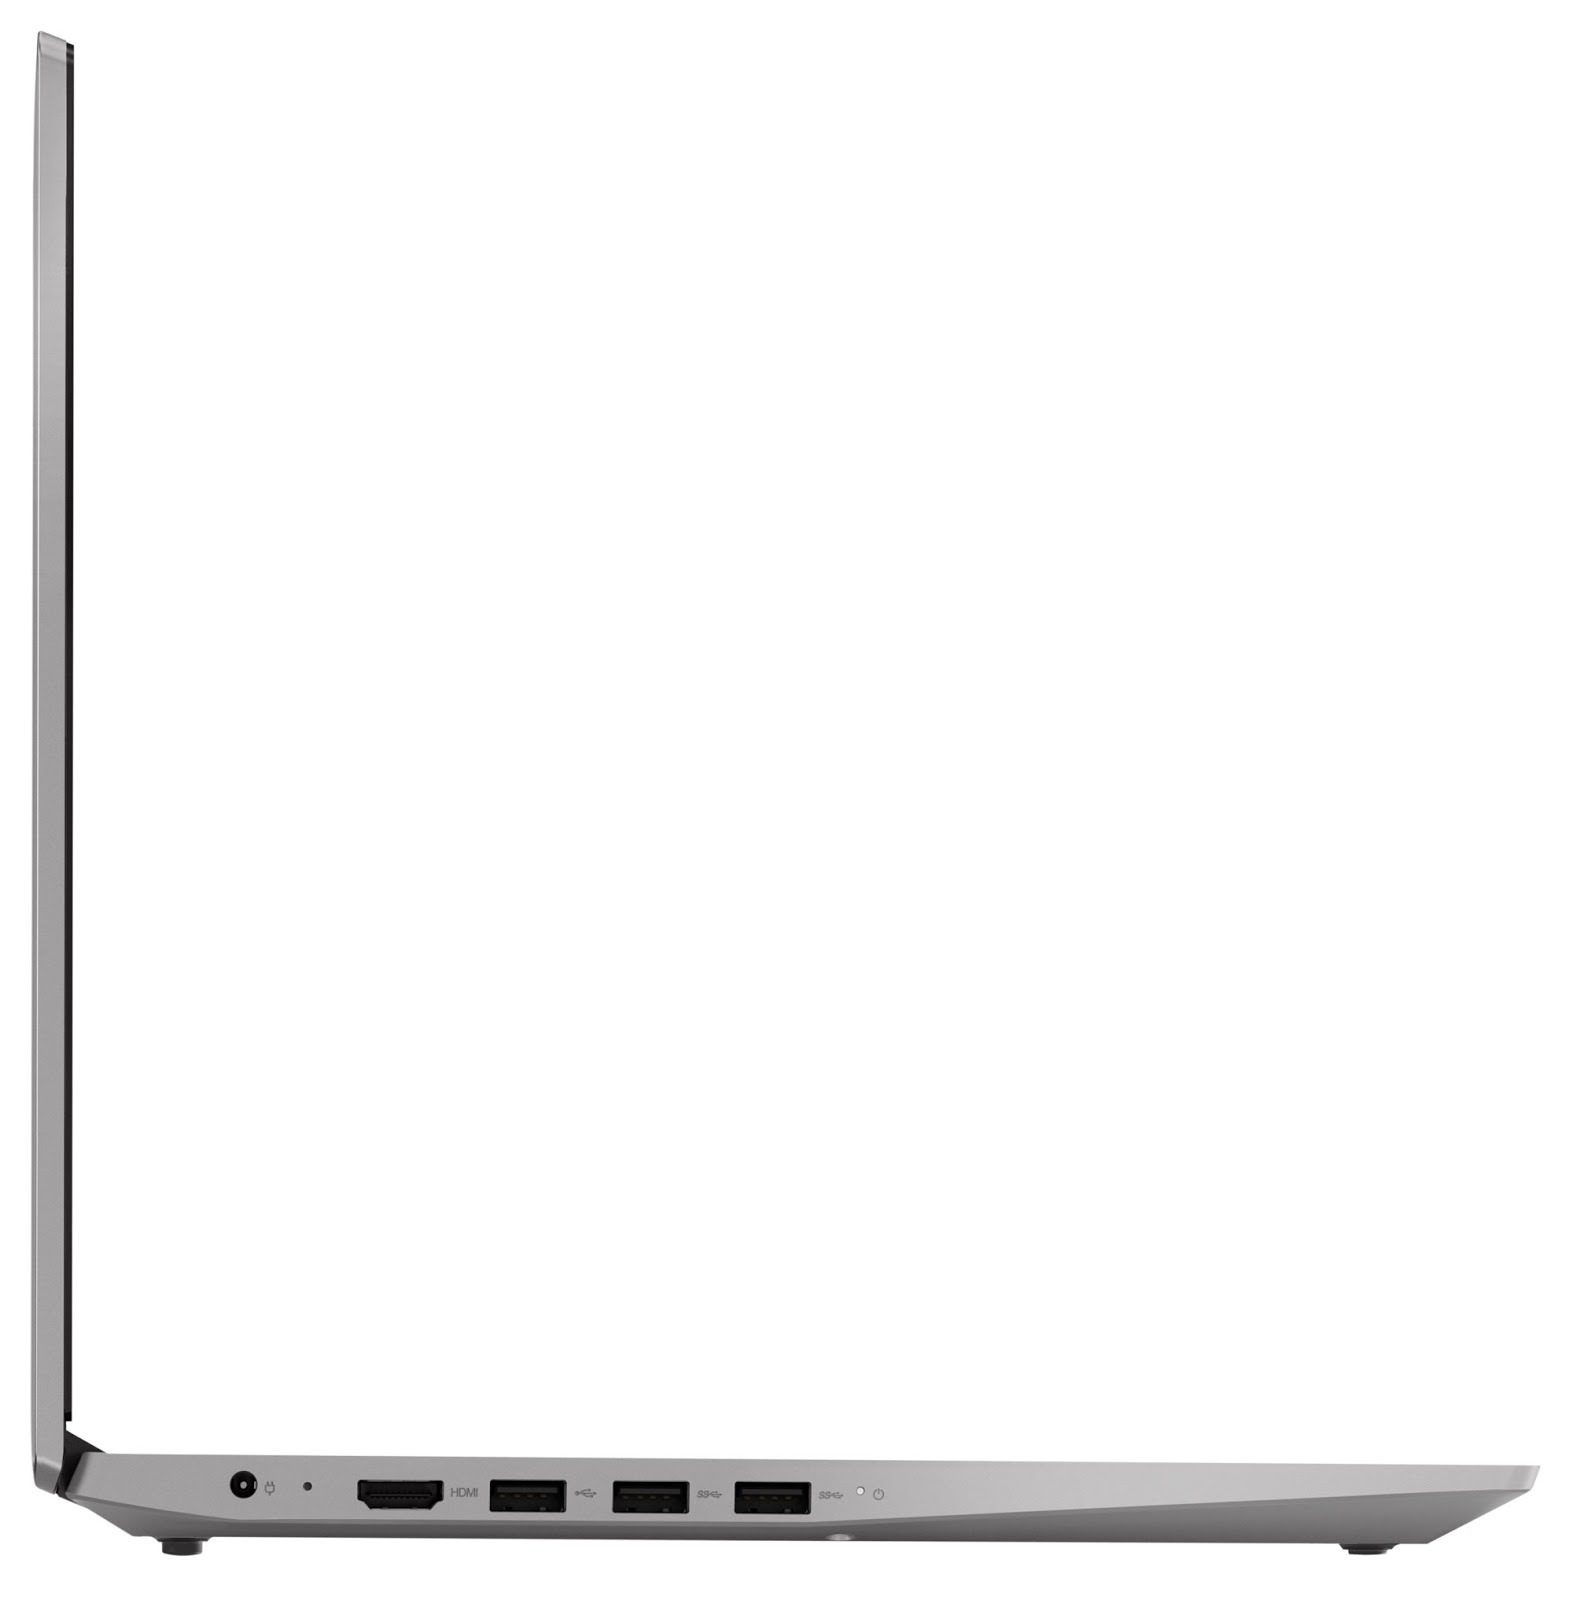 Фото 5. Ноутбук Lenovo ideapad S145-15IGM Grey (81MX003QRE)